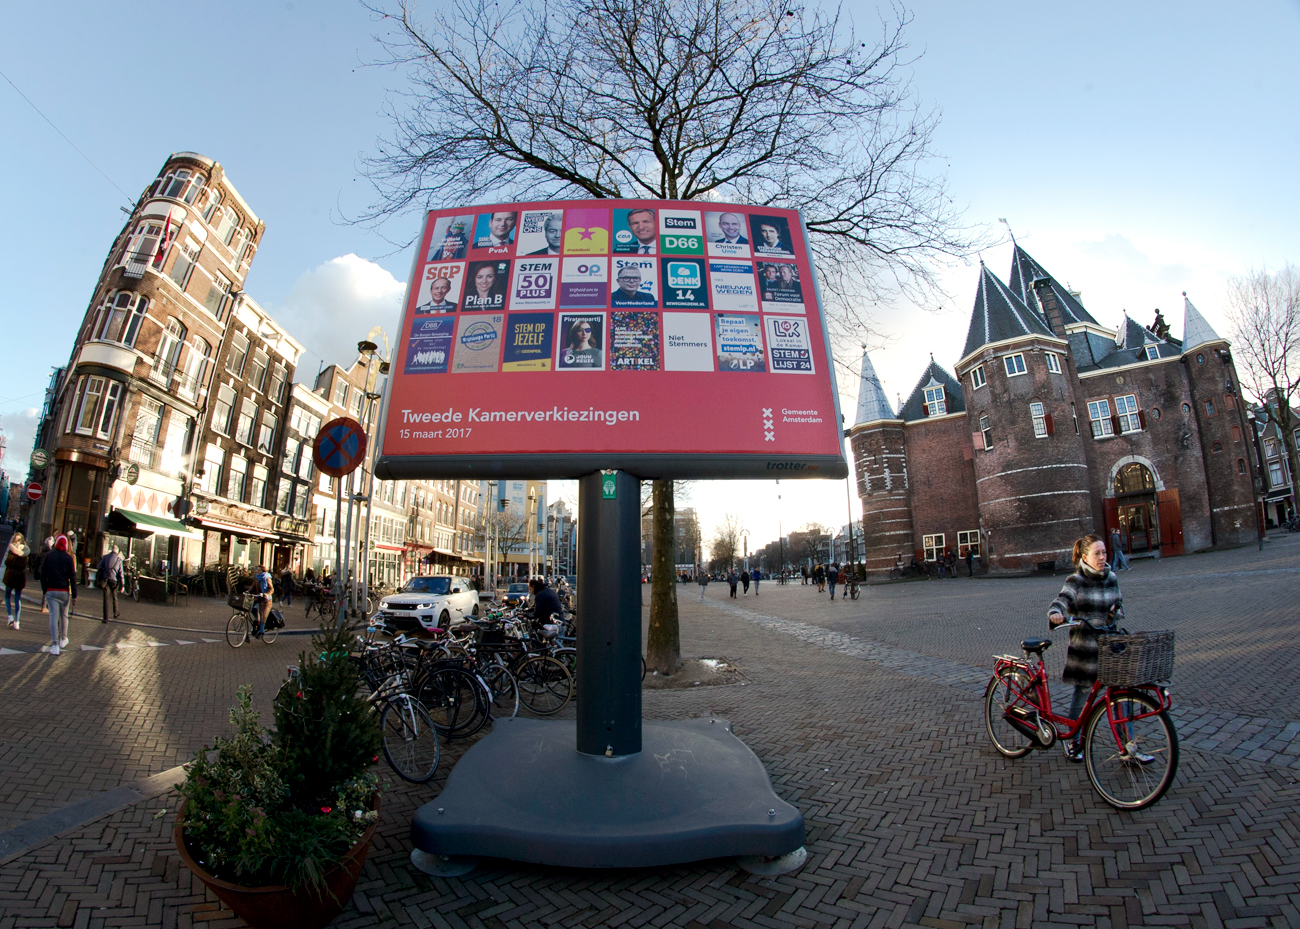 An election billboard is out up in a square in the center of Amsterdam, Netherlands.